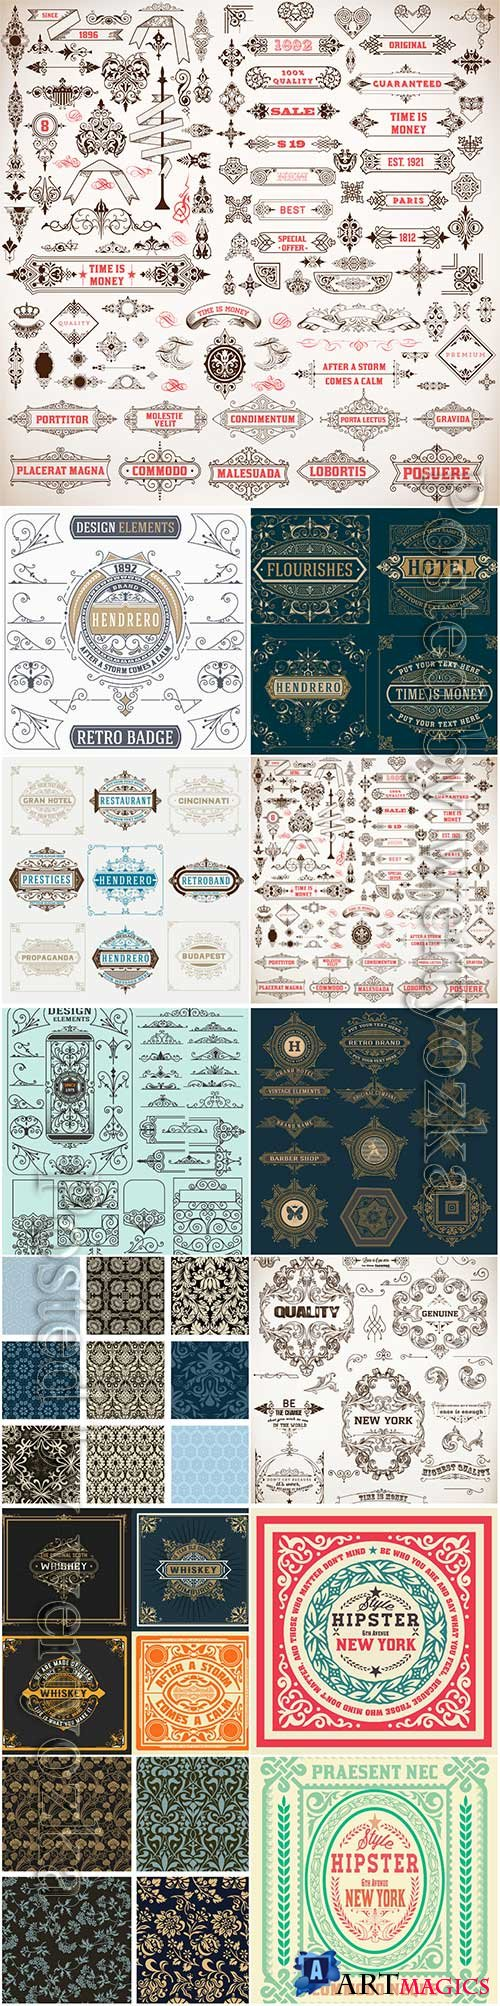 Vector vintage labels, emblems, logos, ribbons, patterns # 5